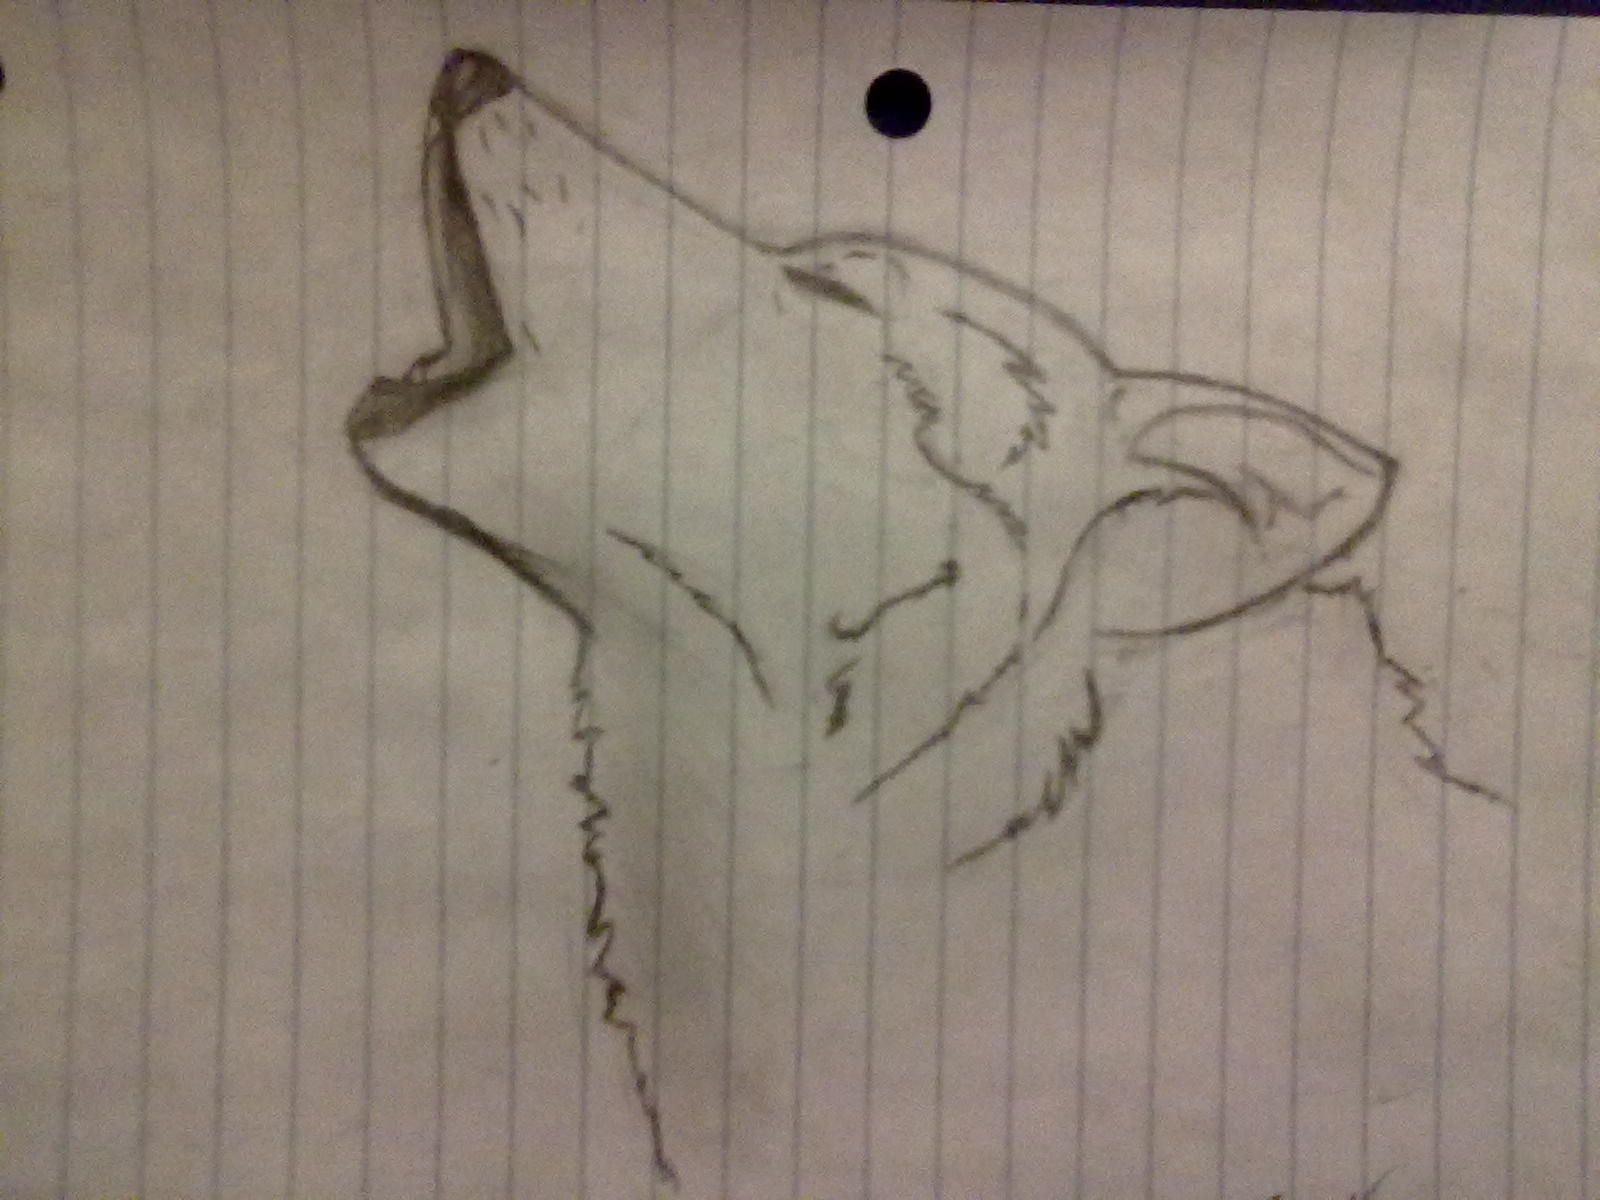 Images for sad wolf howl drawings pintrist pinterest drawings images for sad wolf howl drawings nowwolf ccuart Gallery